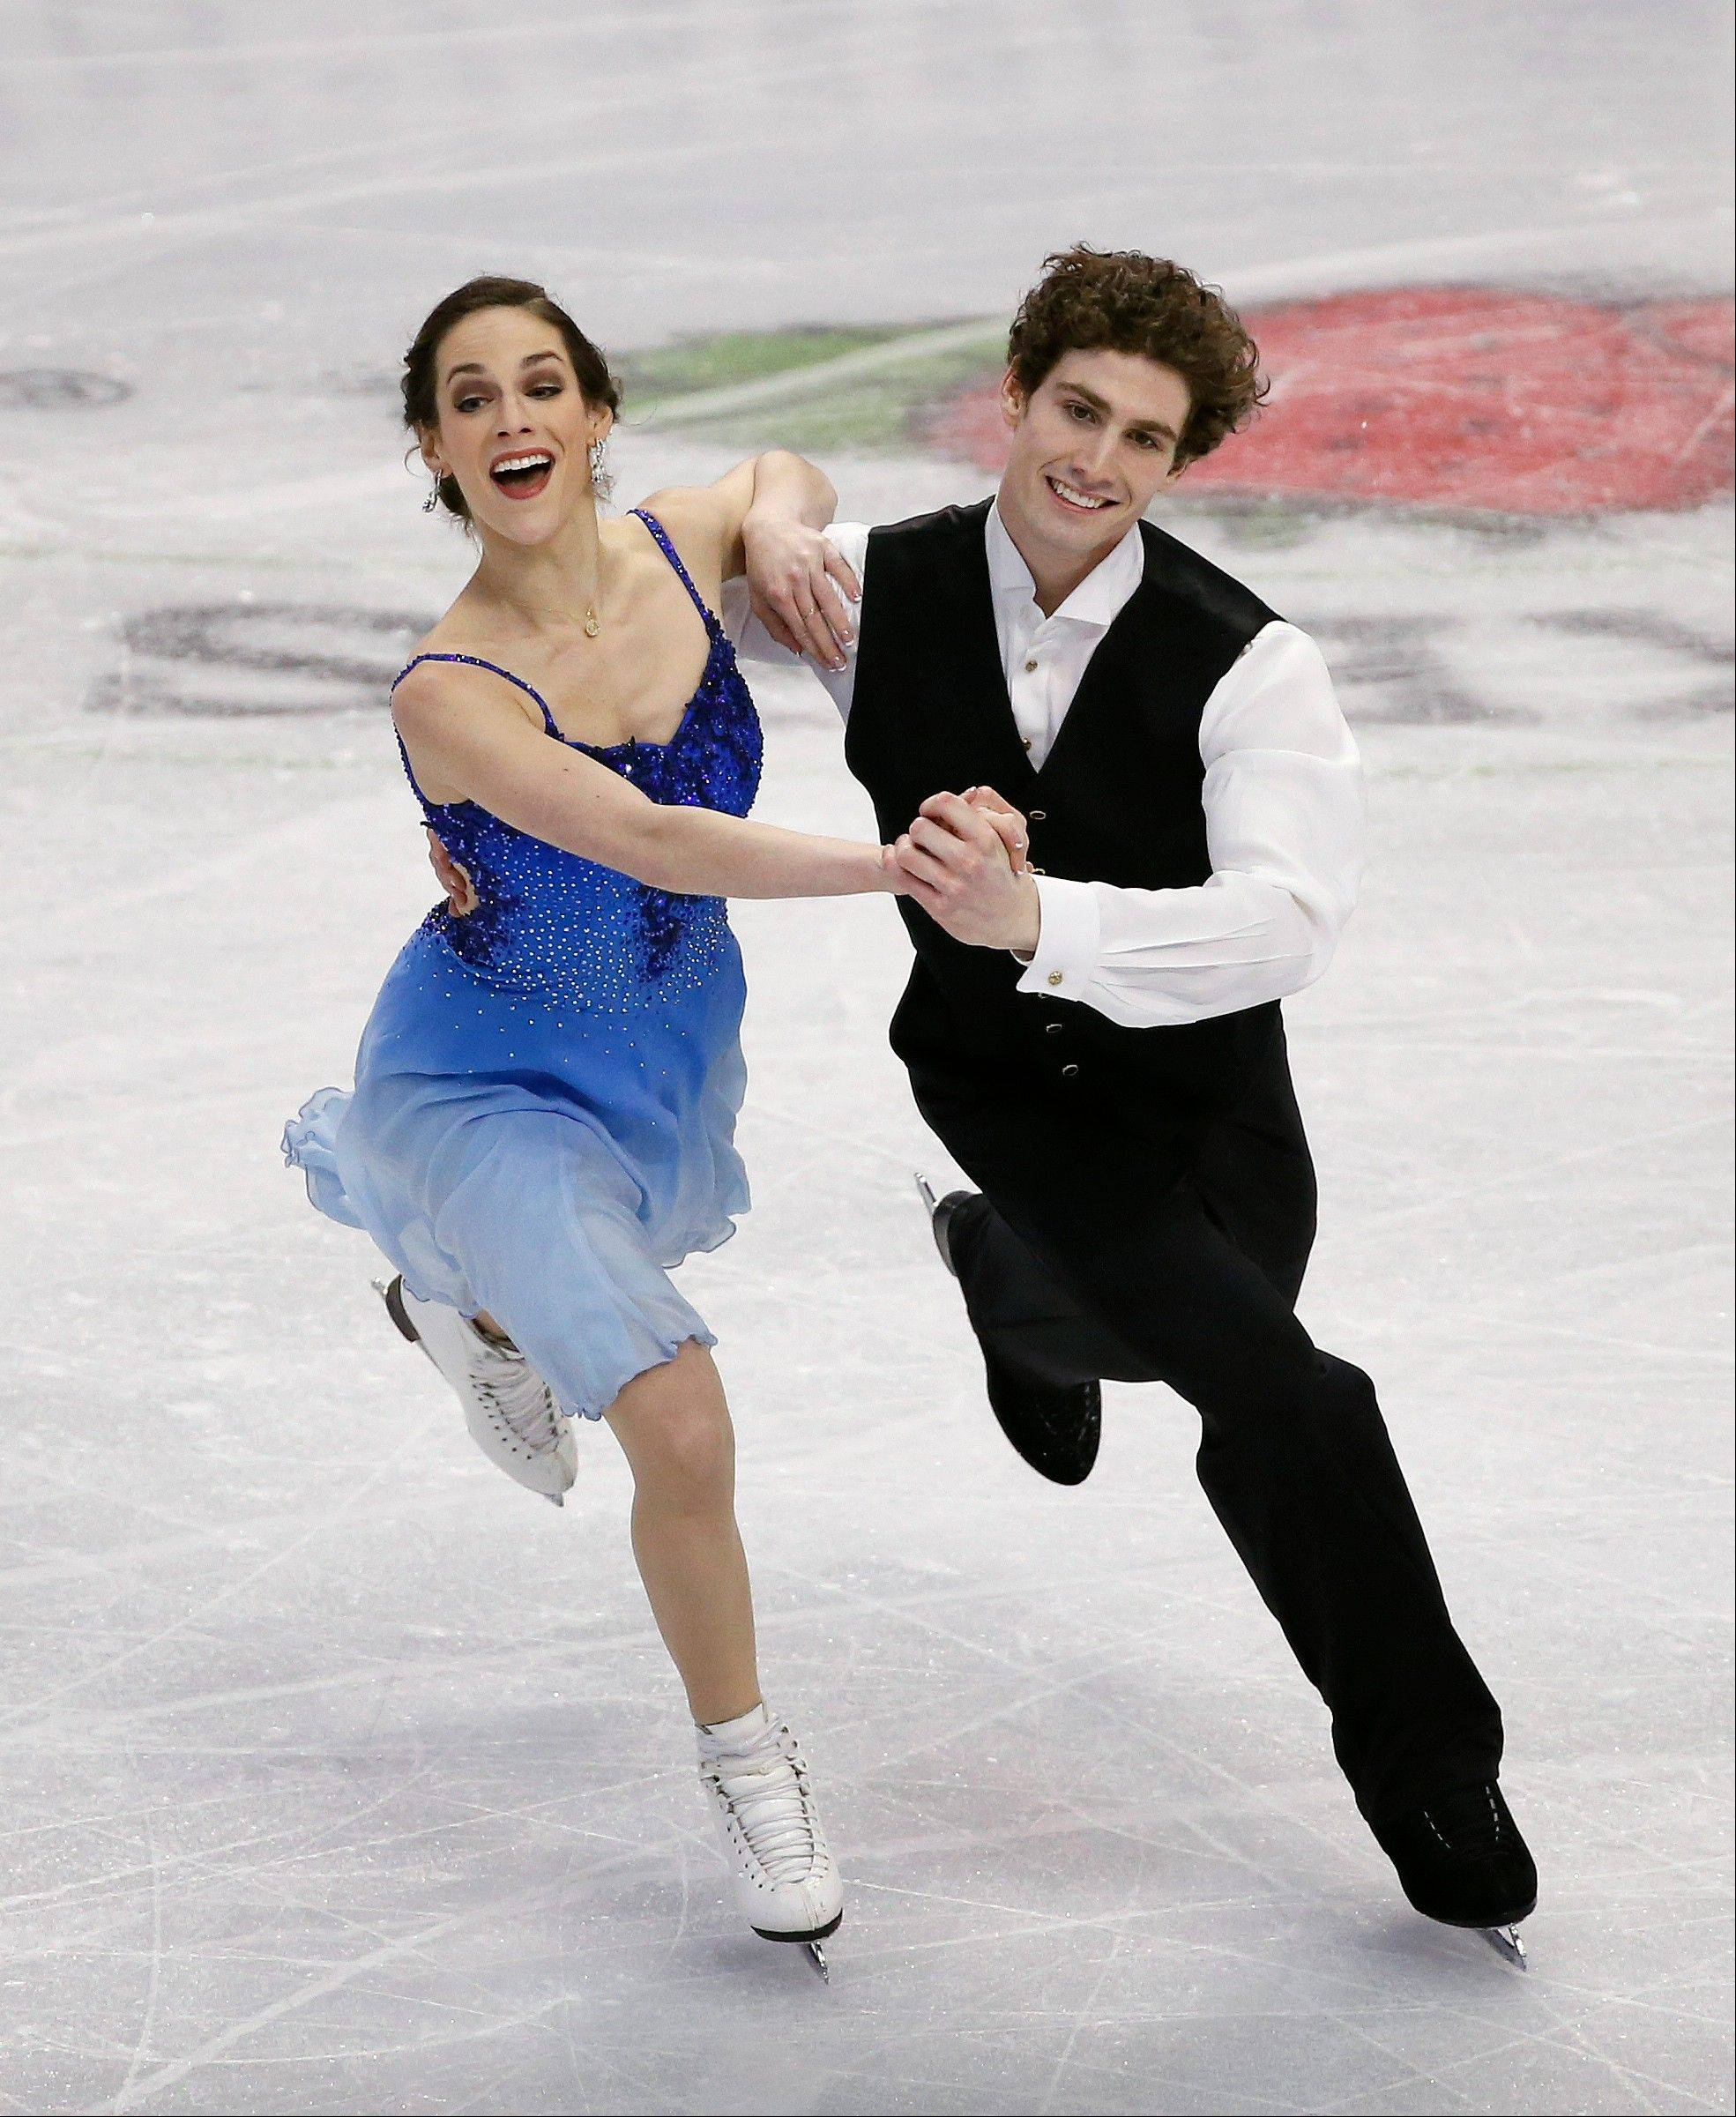 Alissandra Aronow and Algonquin resident Collin Brubaker skate during the ice dance short program Friday at the U.S. Figure Skating Championships in Boston. They were in eighth place after the short program.